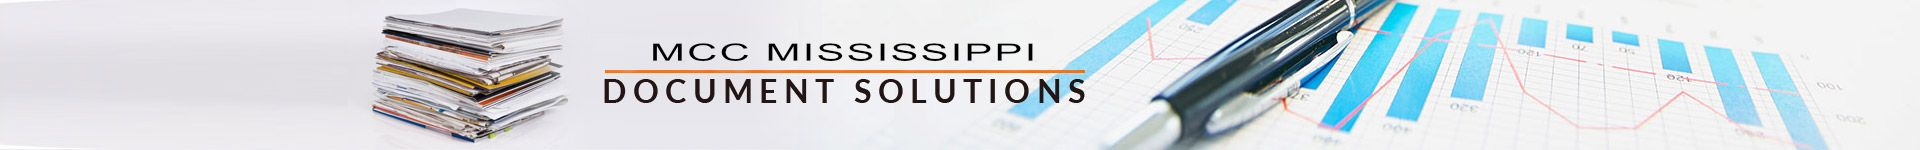 MCC Mississippi Document management software